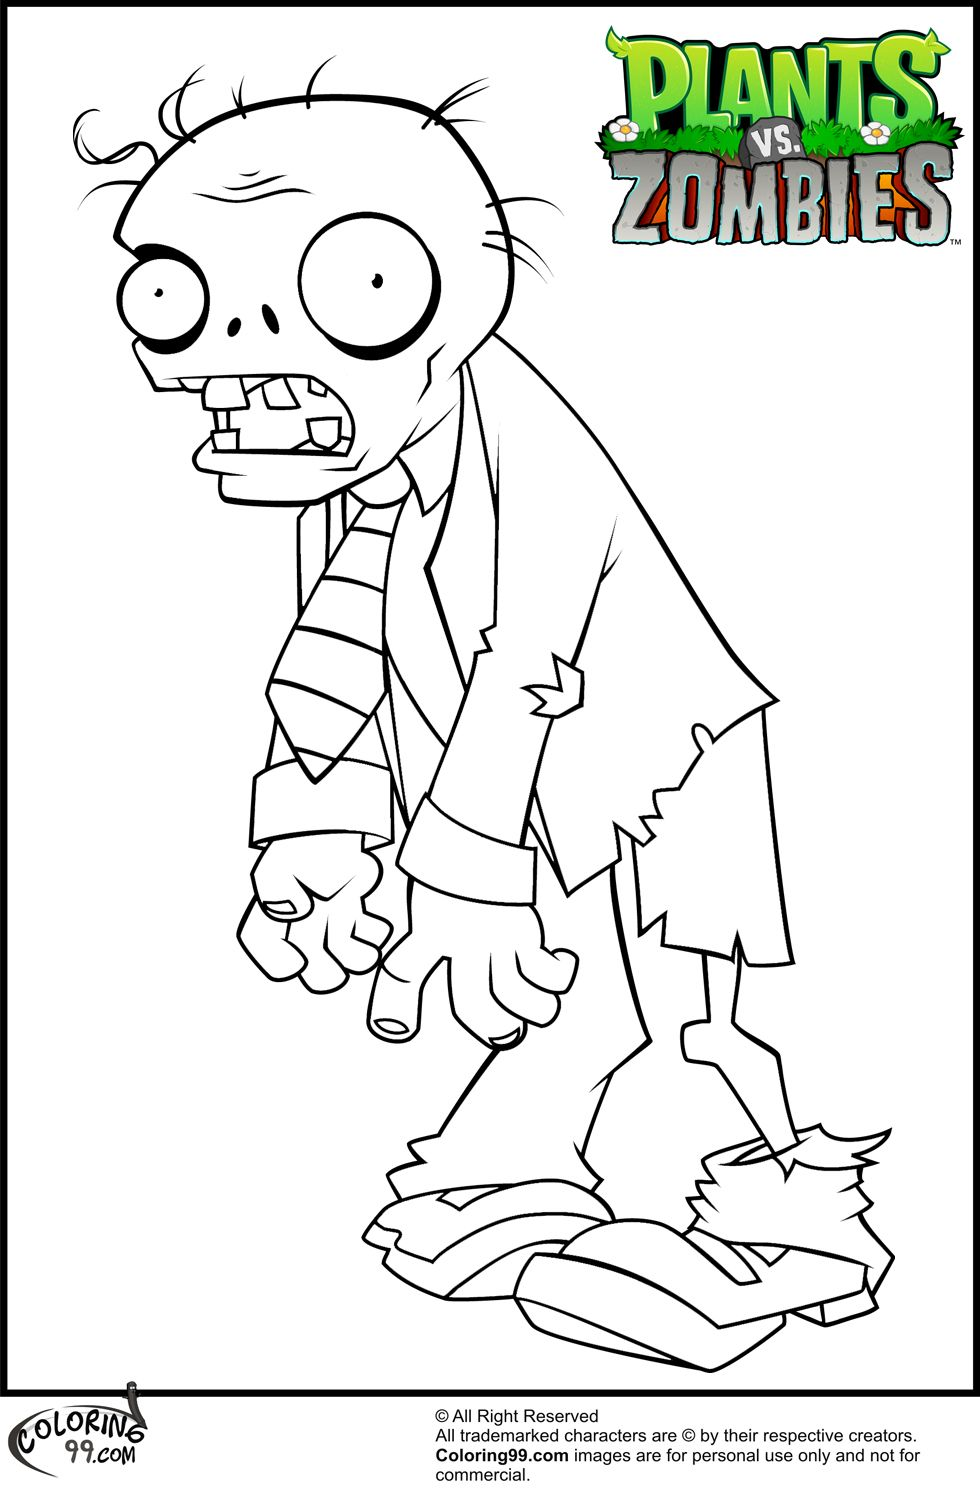 Spectacular Plants Vs Zombies Coloring Pages 11 Plants vs Zombies is